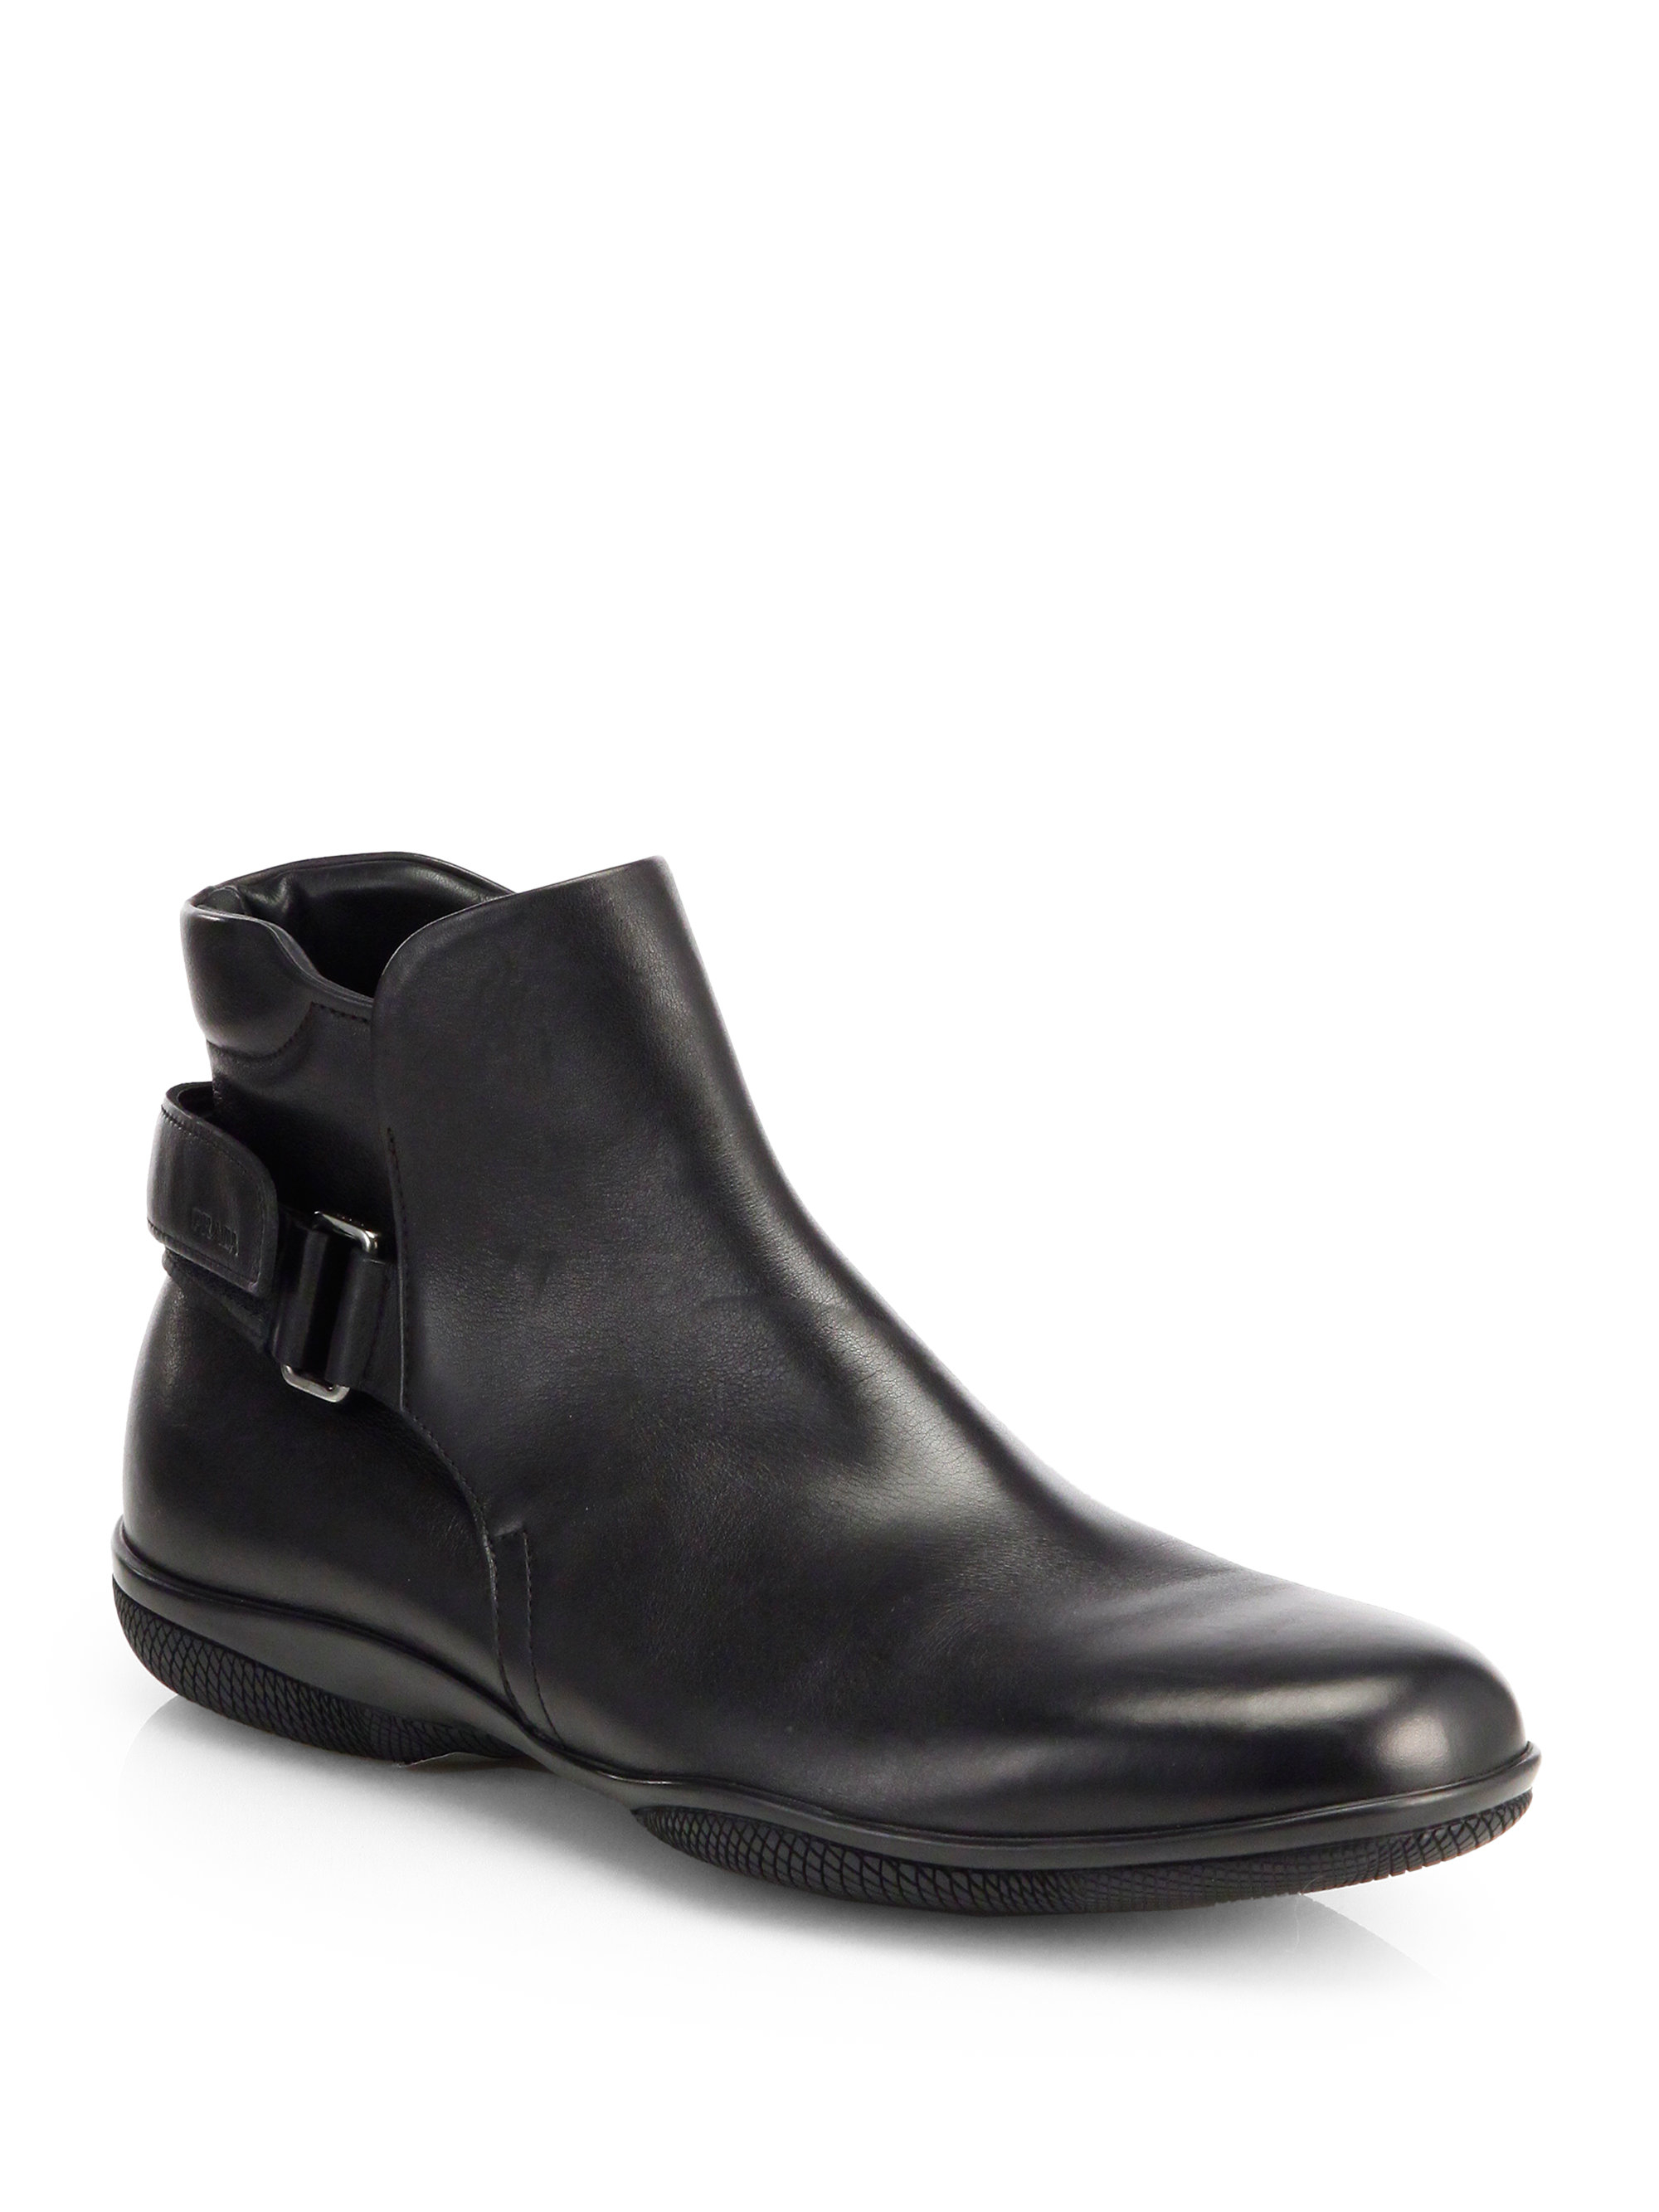 prada calfskin leather ankle boots in black for lyst